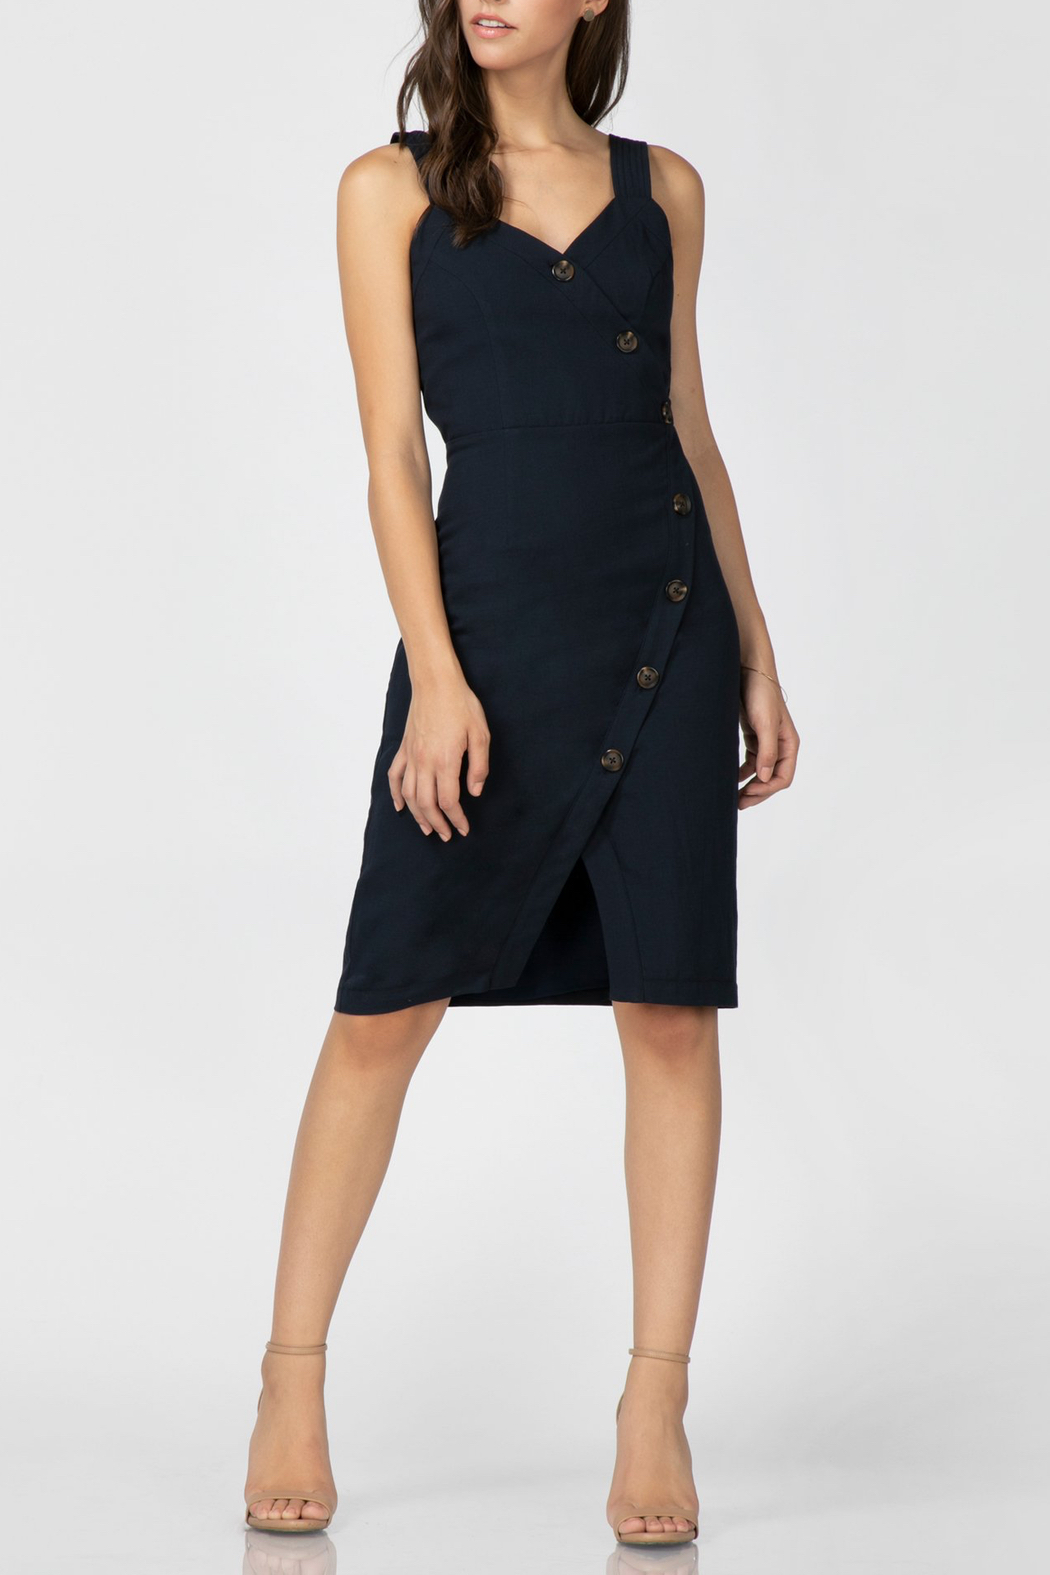 Adelyn Rae Presley Wrap Dress - Front Full Image